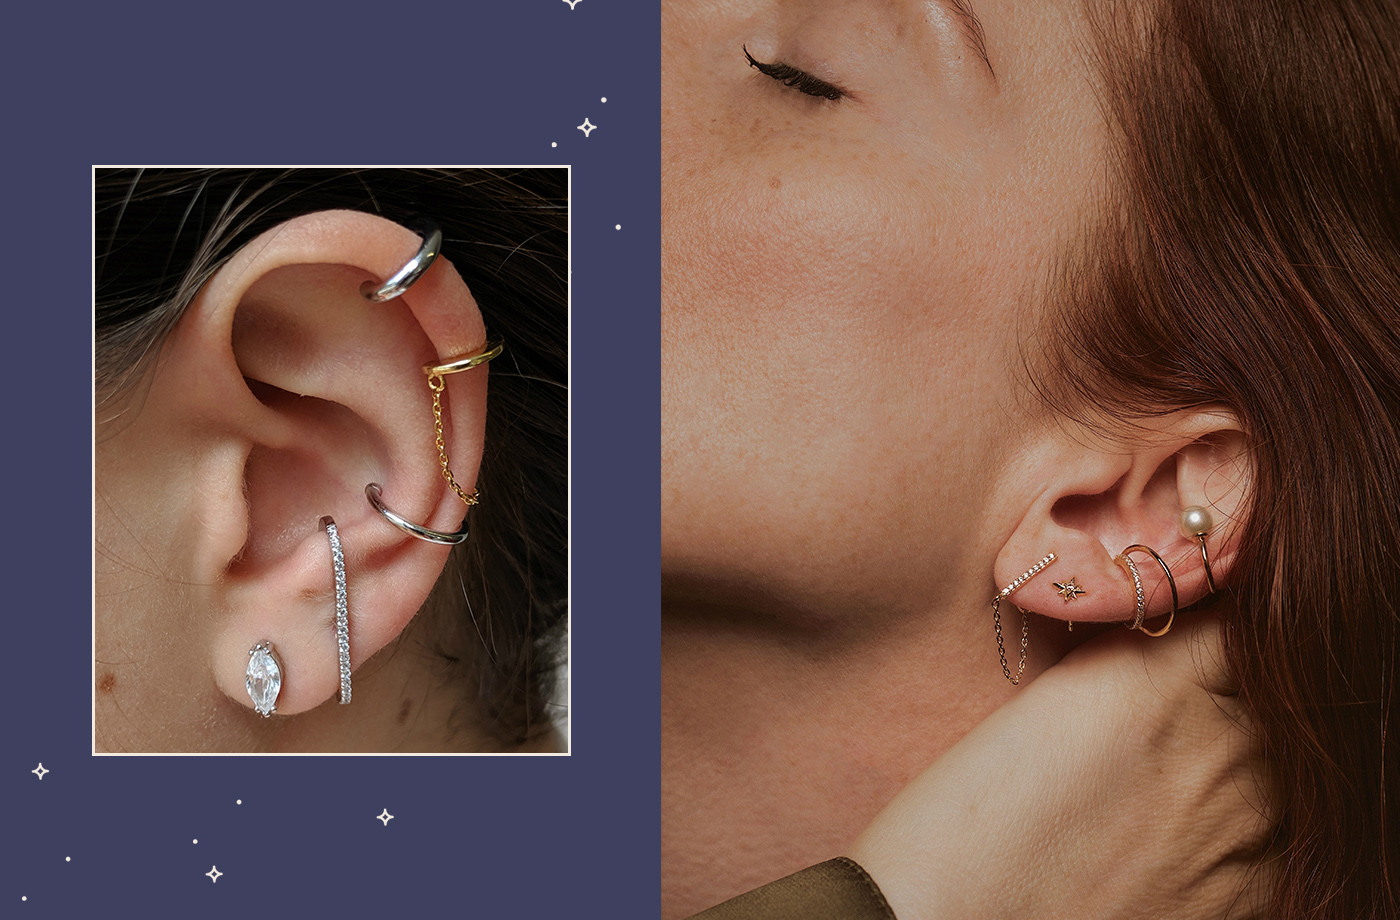 Thumbnail for A Constellation Piercing Is the Most Fun Way To Curate Your Ear Party